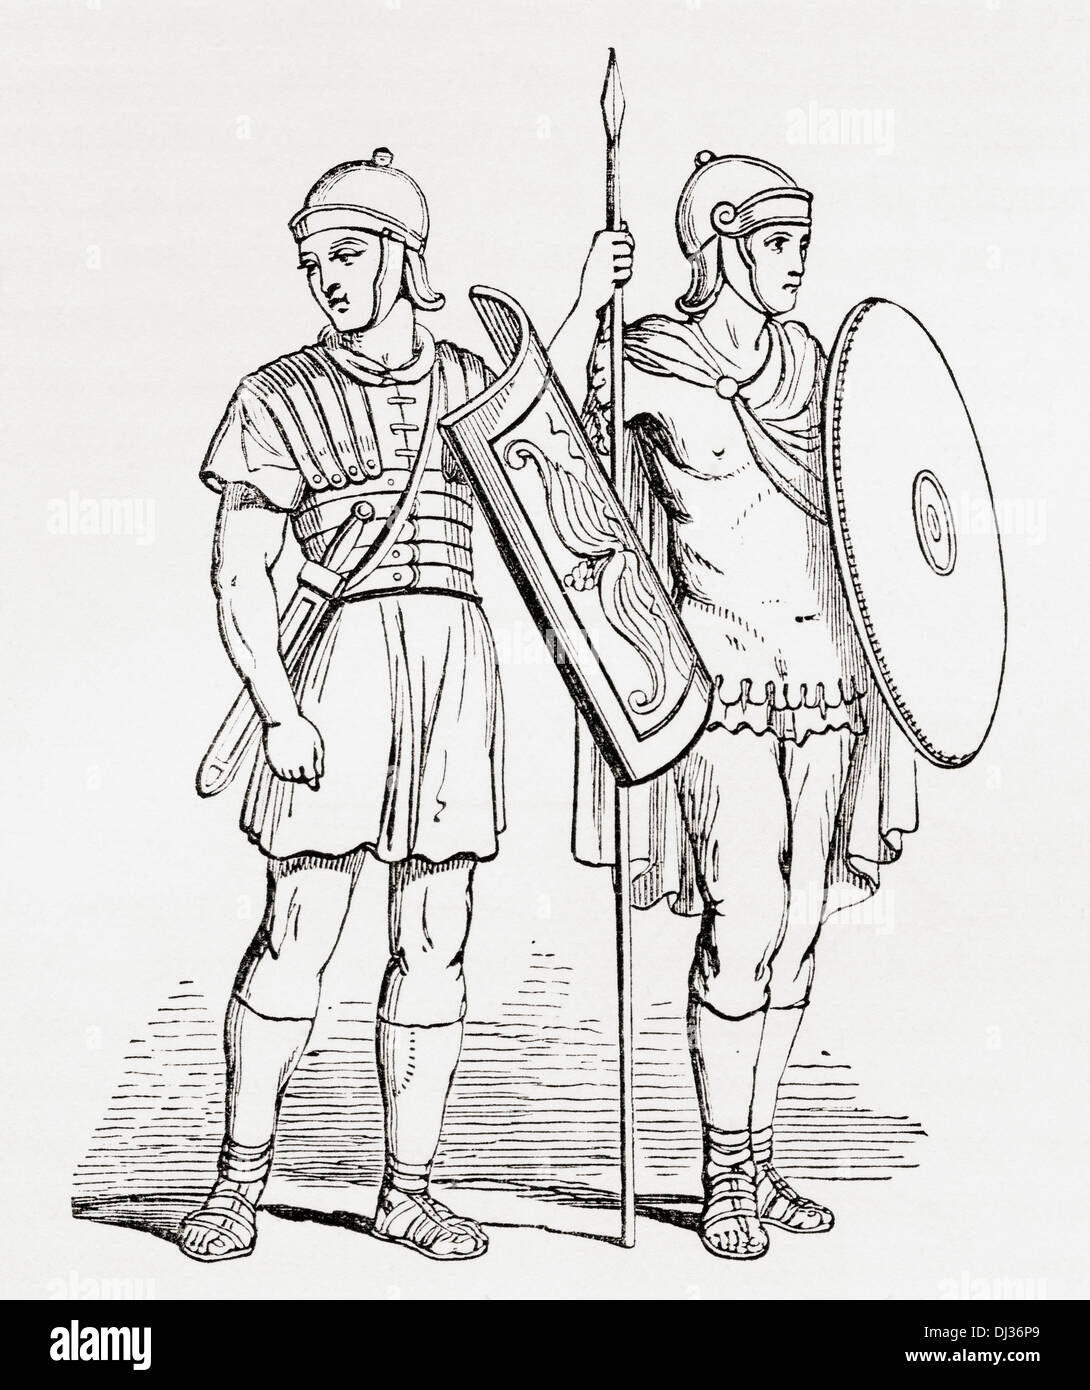 Roman infantry soldiers, after figures on Trajan's Column. - Stock Image